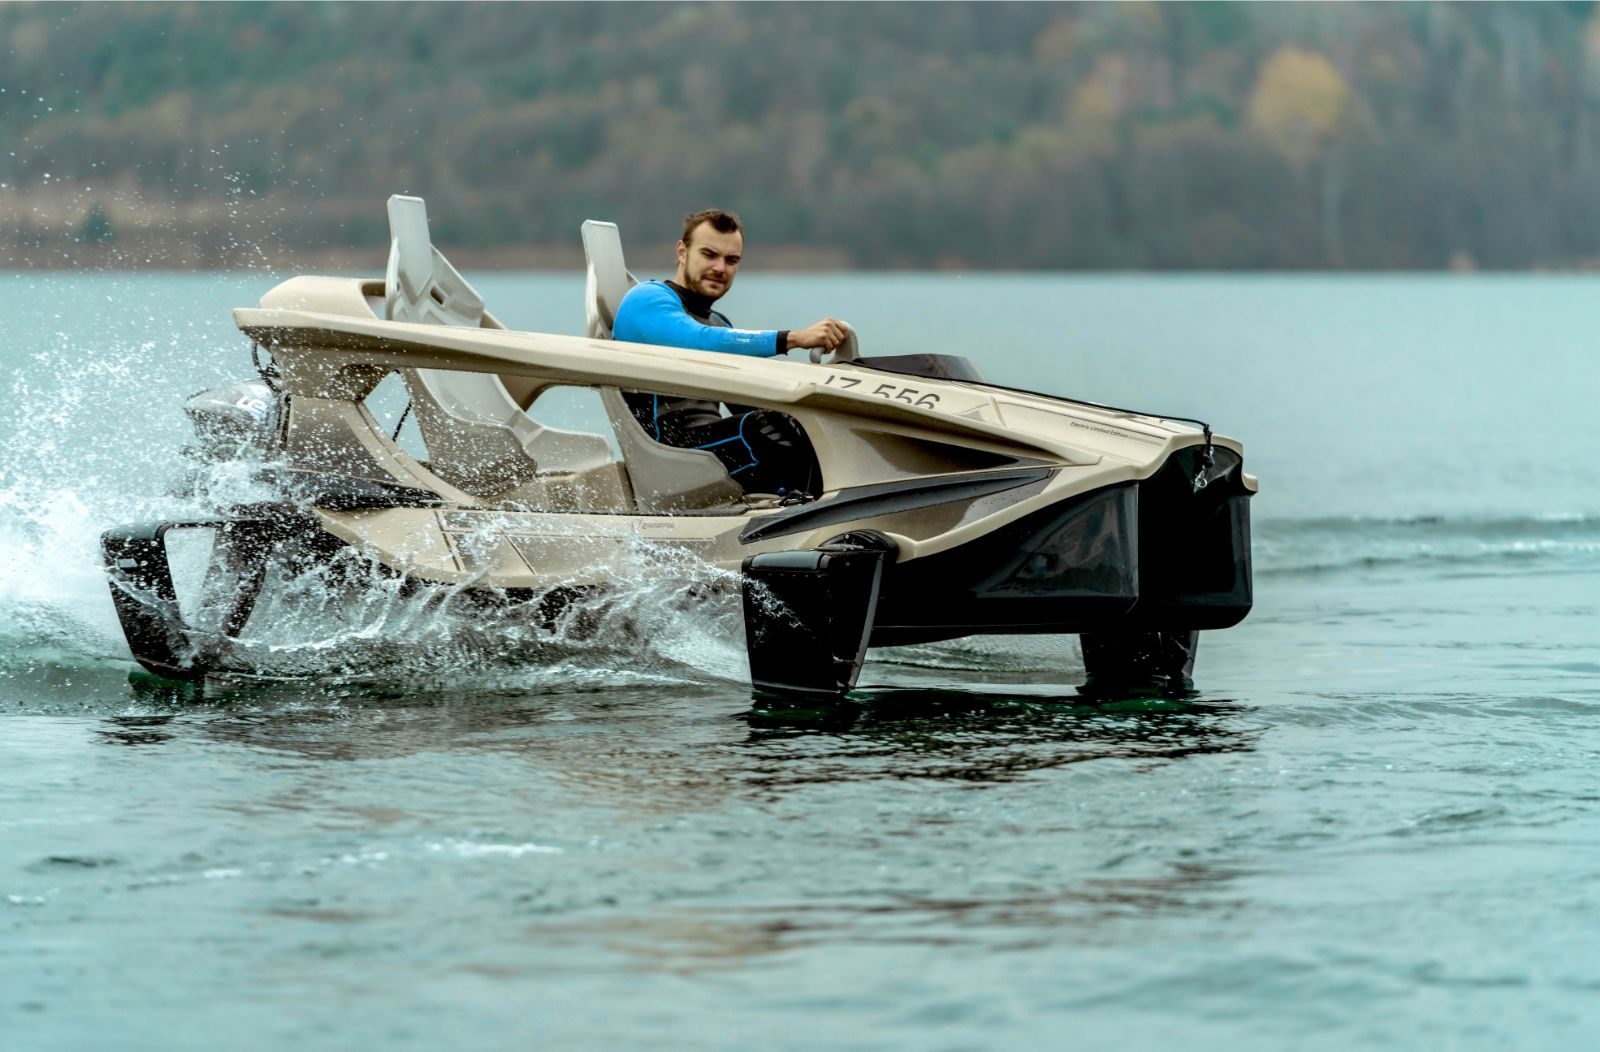 Quadrofoil collected 3 million euros of Series A financing